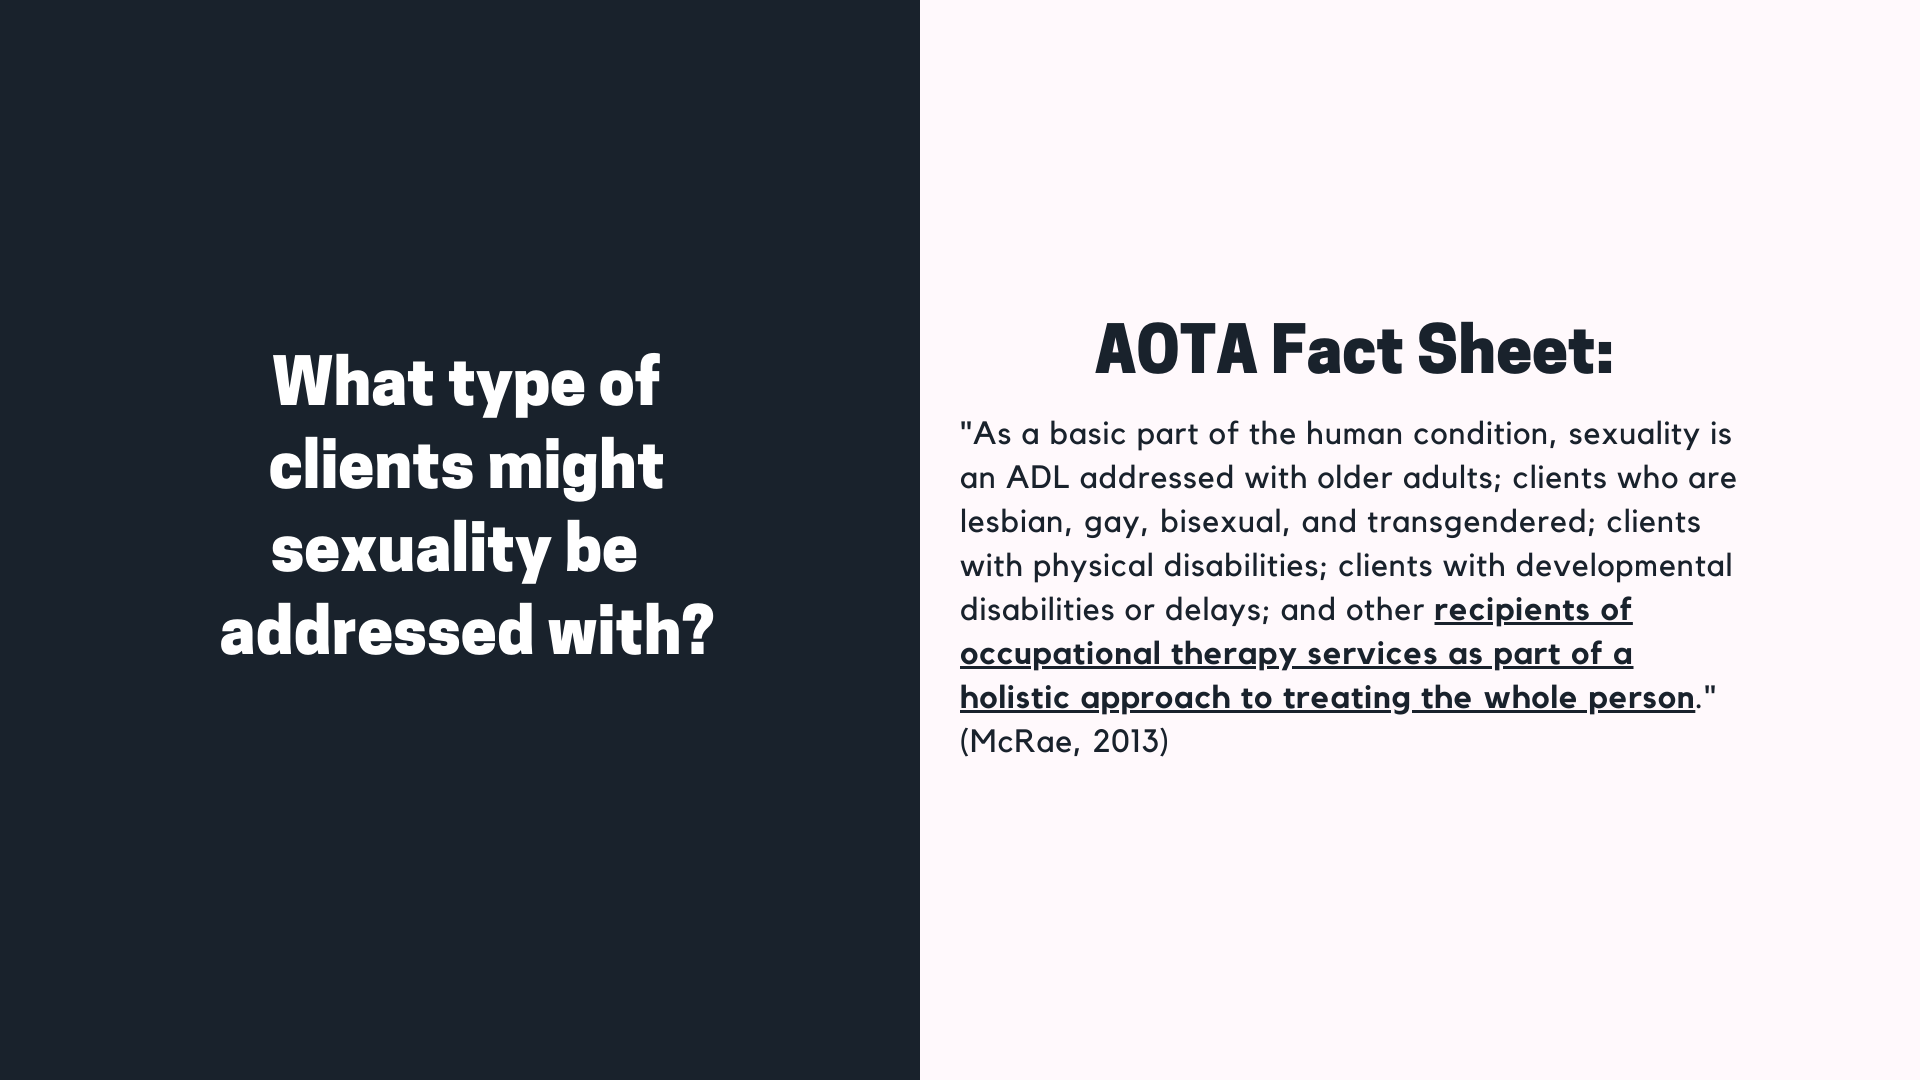 Presentation slide on what type of clients might sexuality be addressed with?